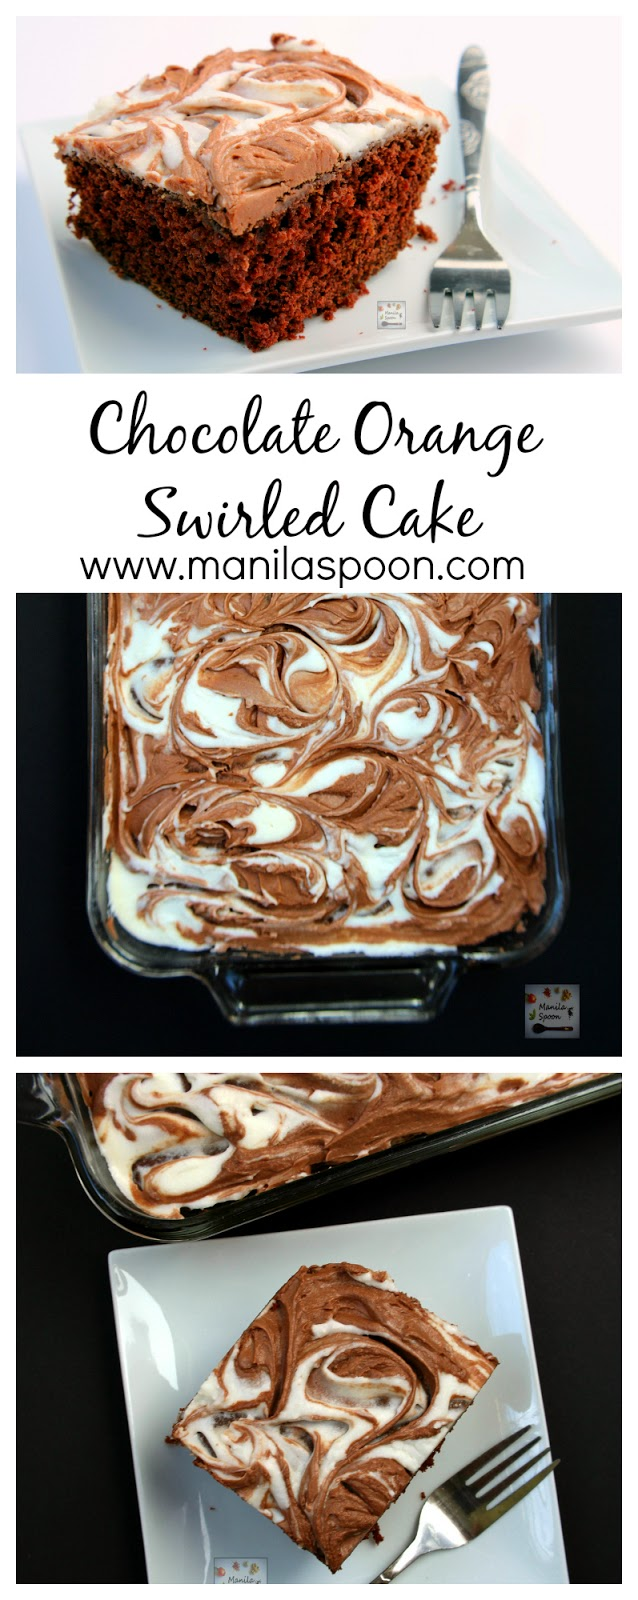 Moist and delicious chocolate cake flavored with fresh orange juice and zest and jazzed up with a swirled frosting - Chocolate Orange Swirled Cake #chocolateorangecake #chocolatecake #chocolatemarblecake #cake